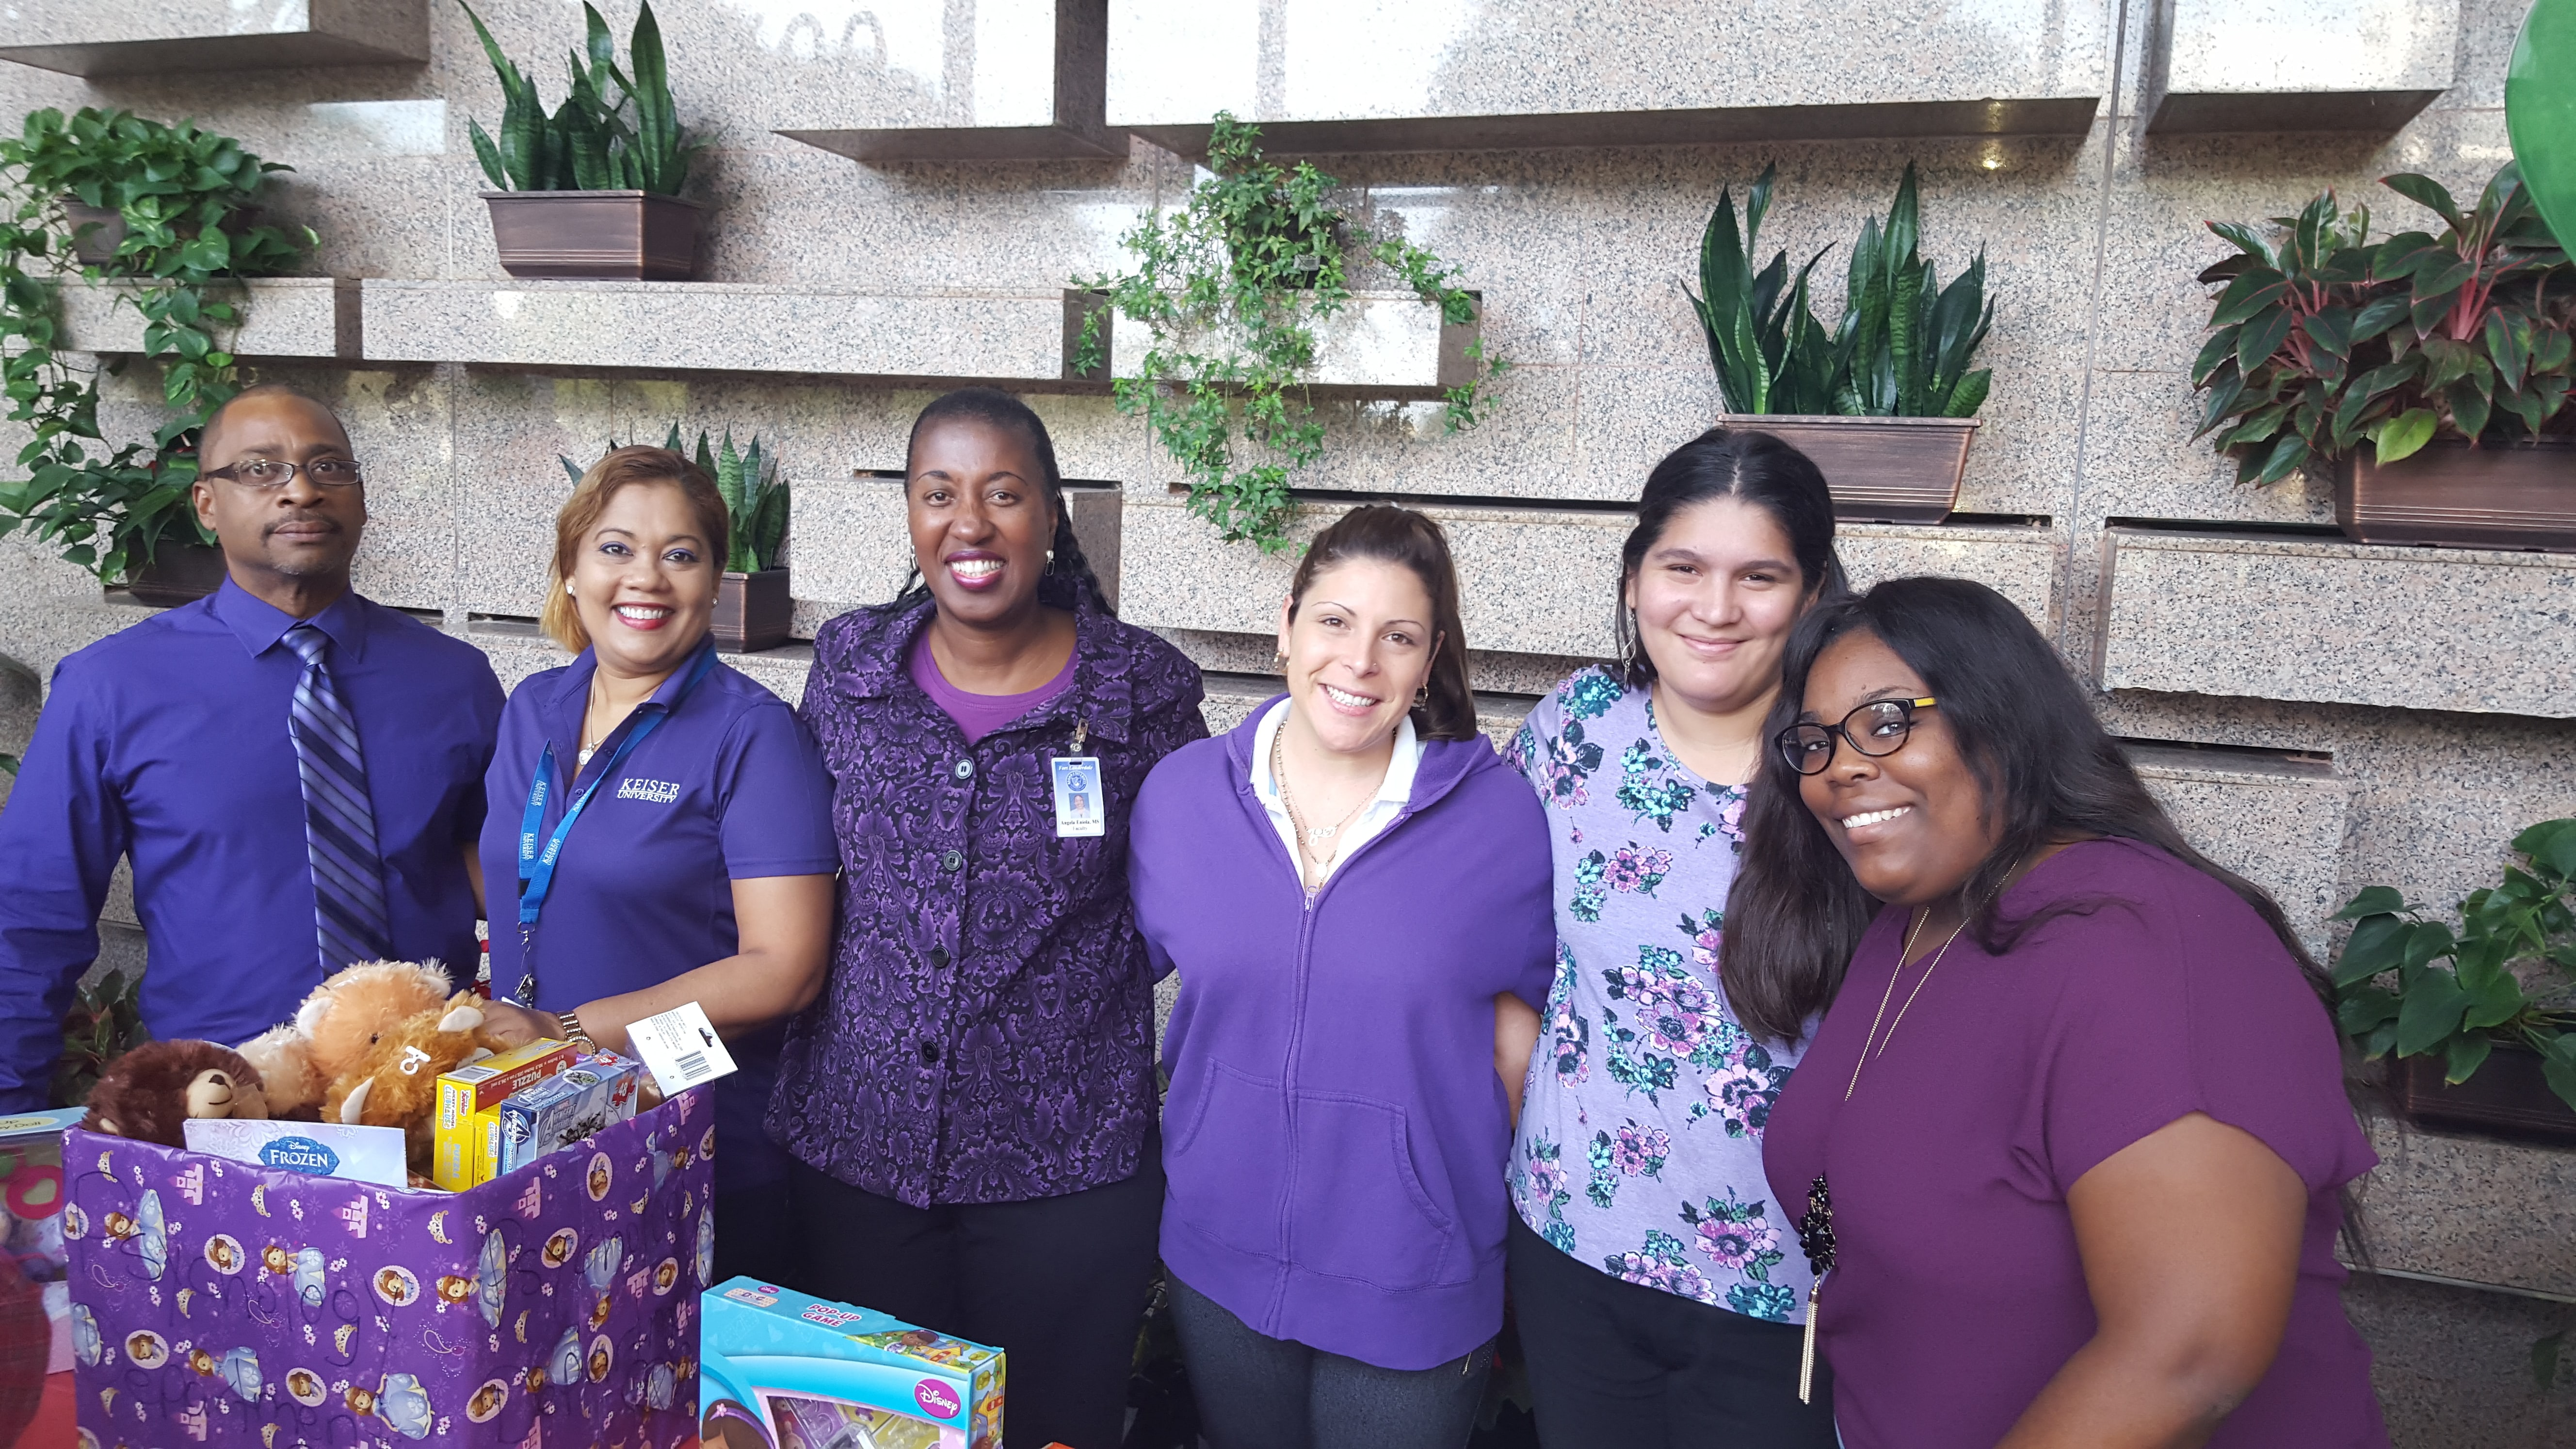 The Ft. Lauderdale Campus Psychology Club Creates a Campaign of Caring